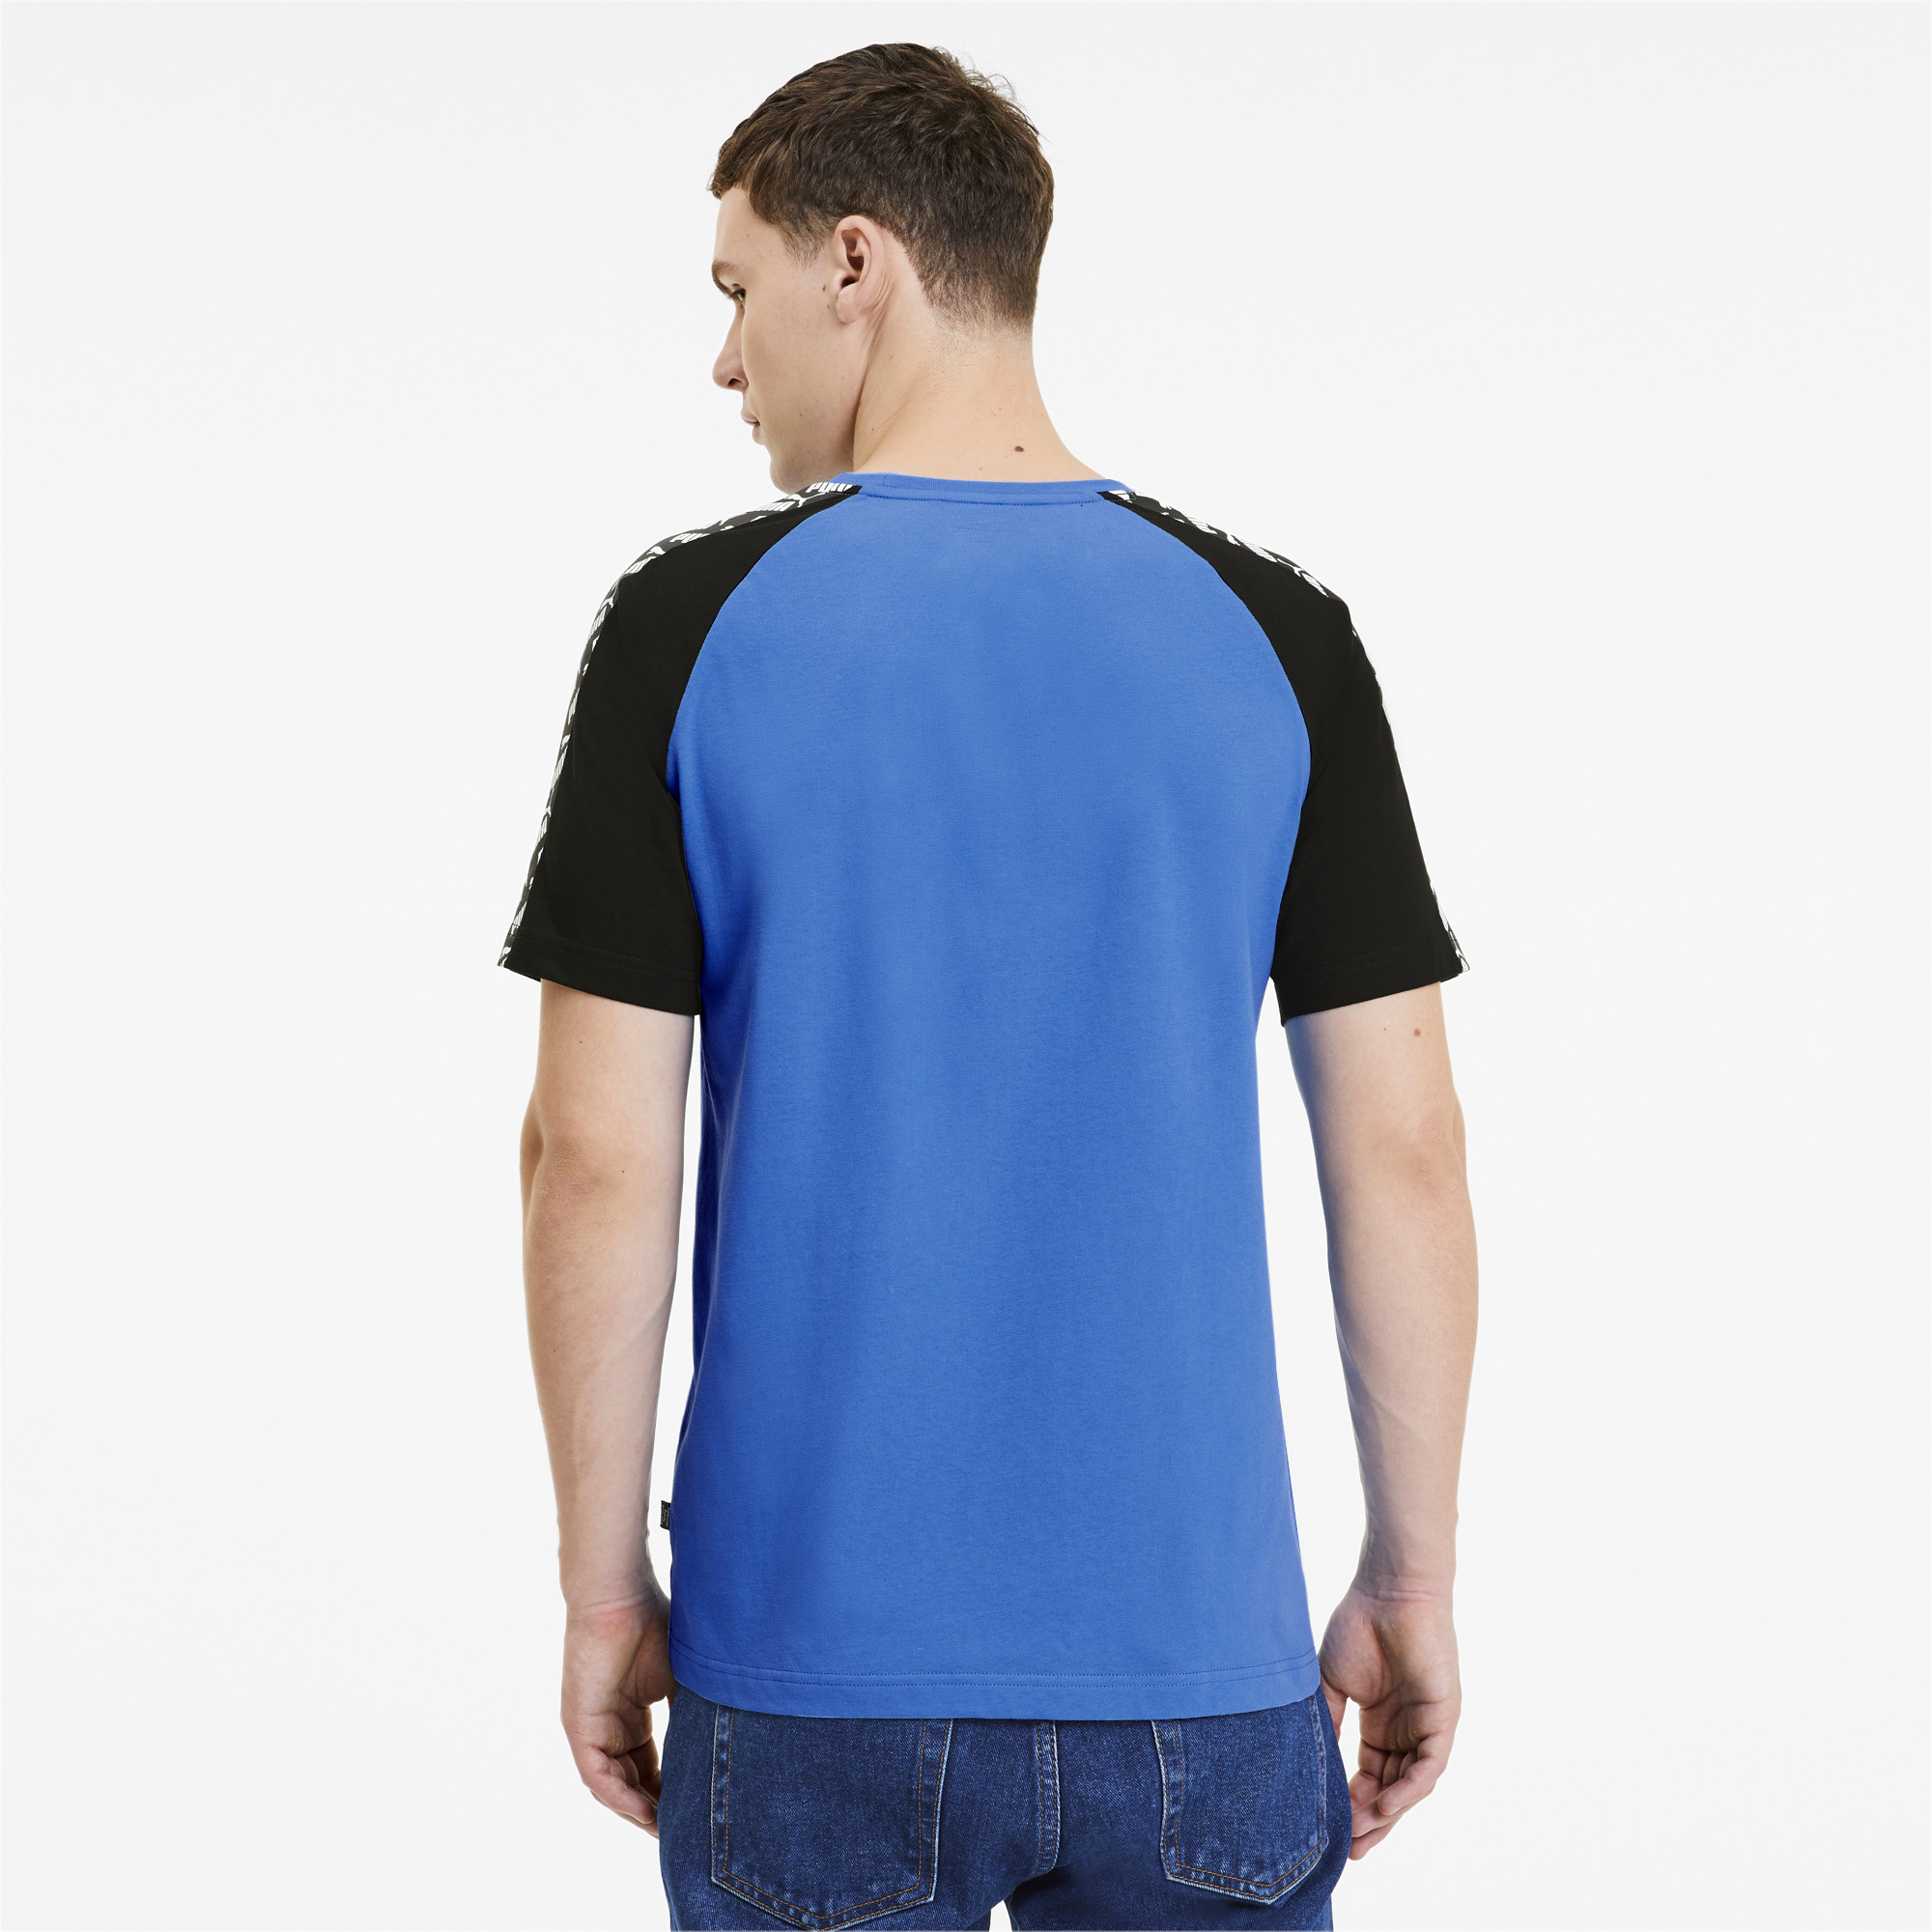 PUMA-Amplified-Men-039-s-Raglan-Tee-Men-Tee-Basics thumbnail 21